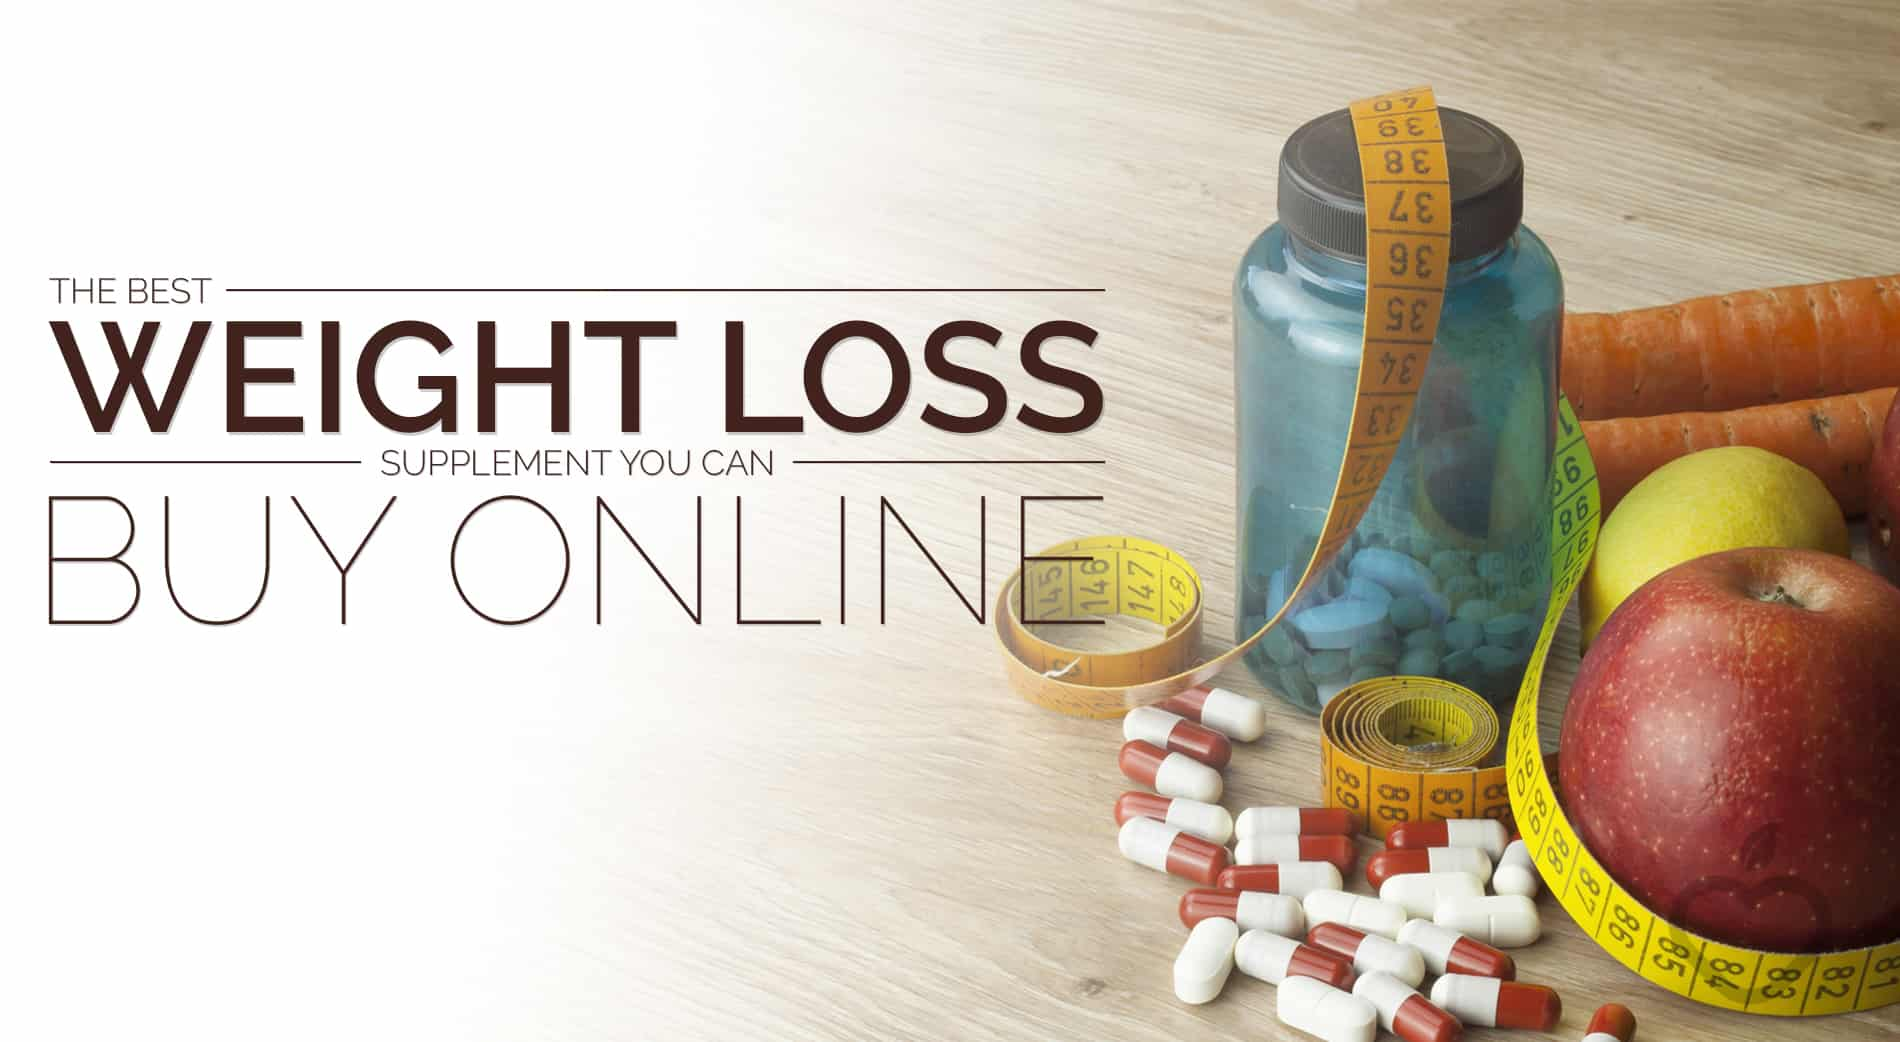 Weightloss Supplement Image Design 1 - The Best Weight Loss Supplement You Can Buy Online